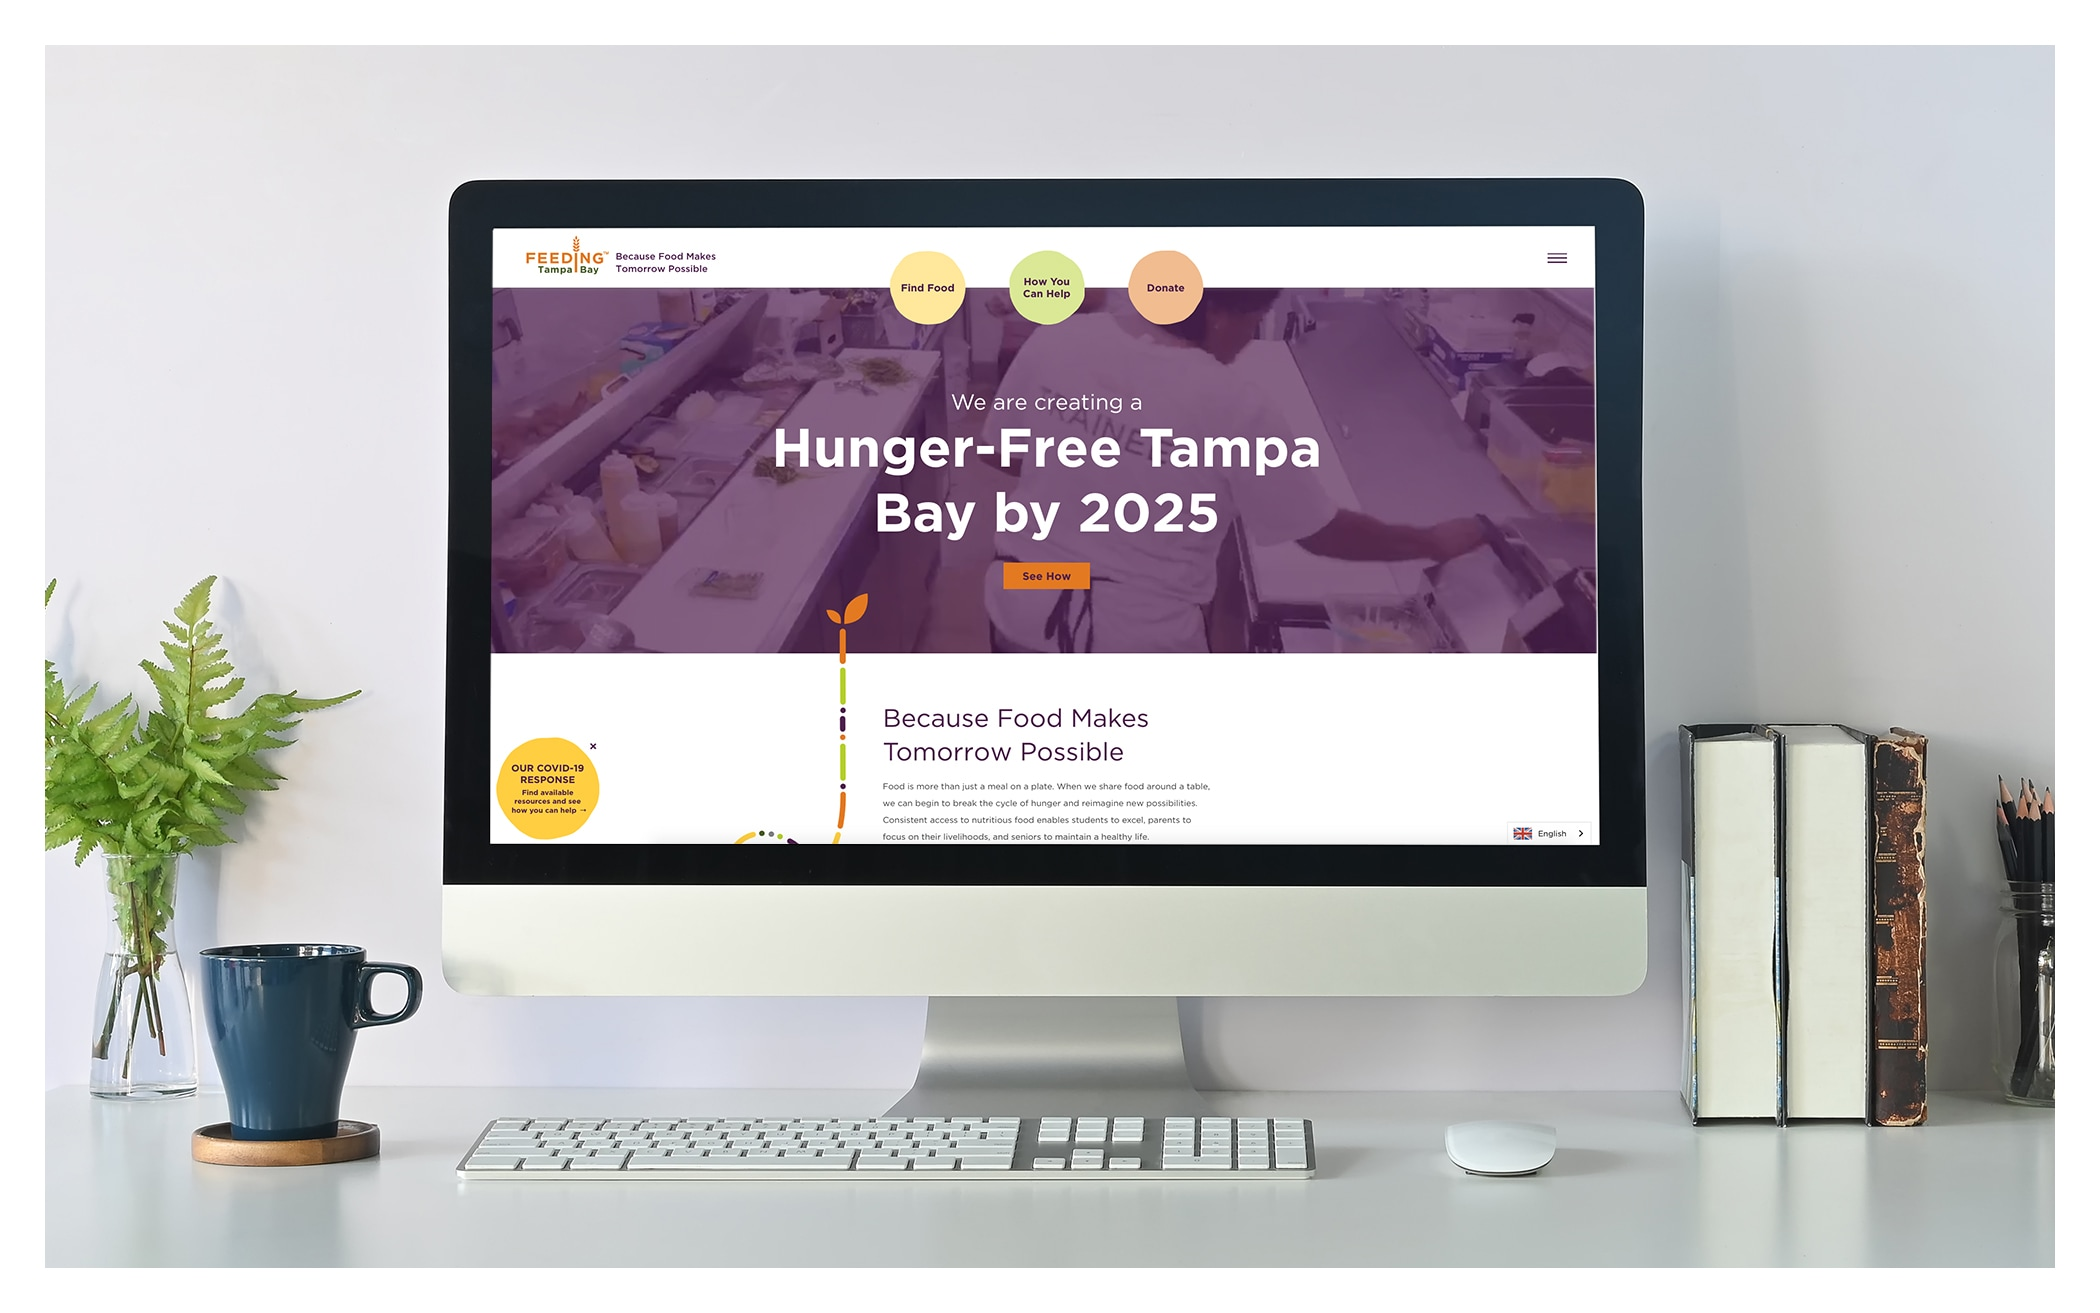 Image of the Feeding Tampa Bay Website on a computer screen